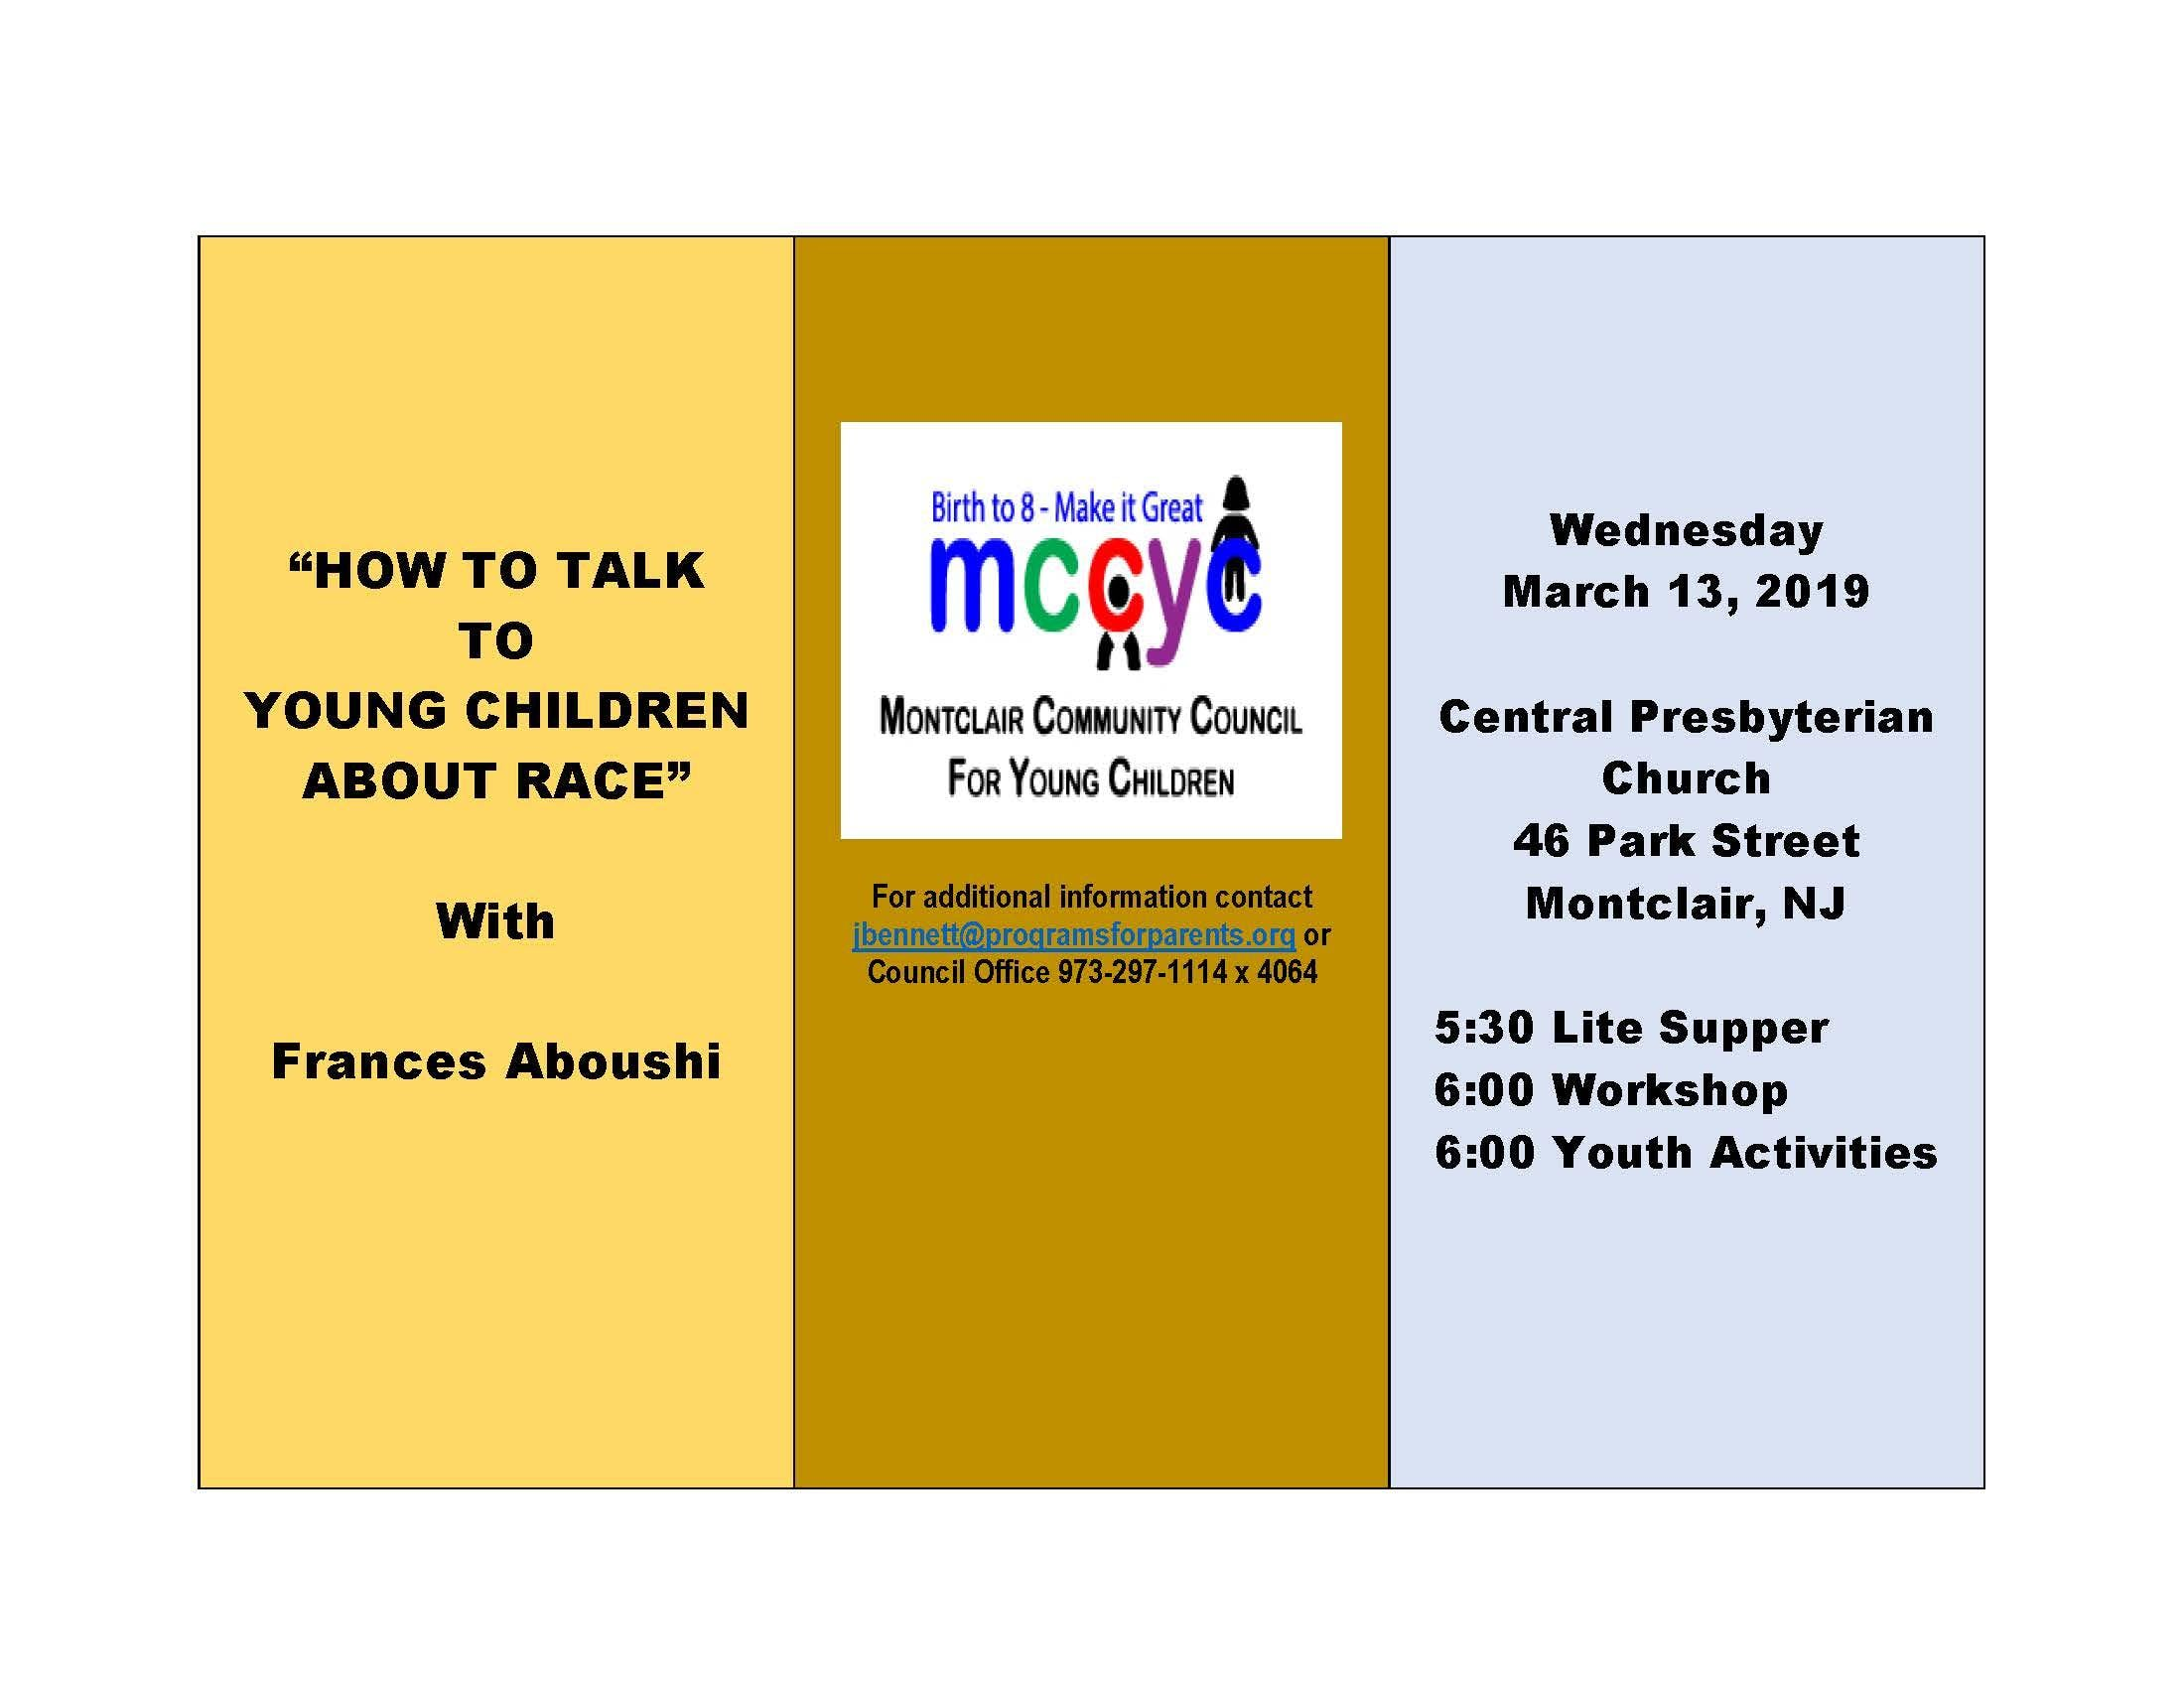 MCCYC presents `How to Talk to Young Children About Race